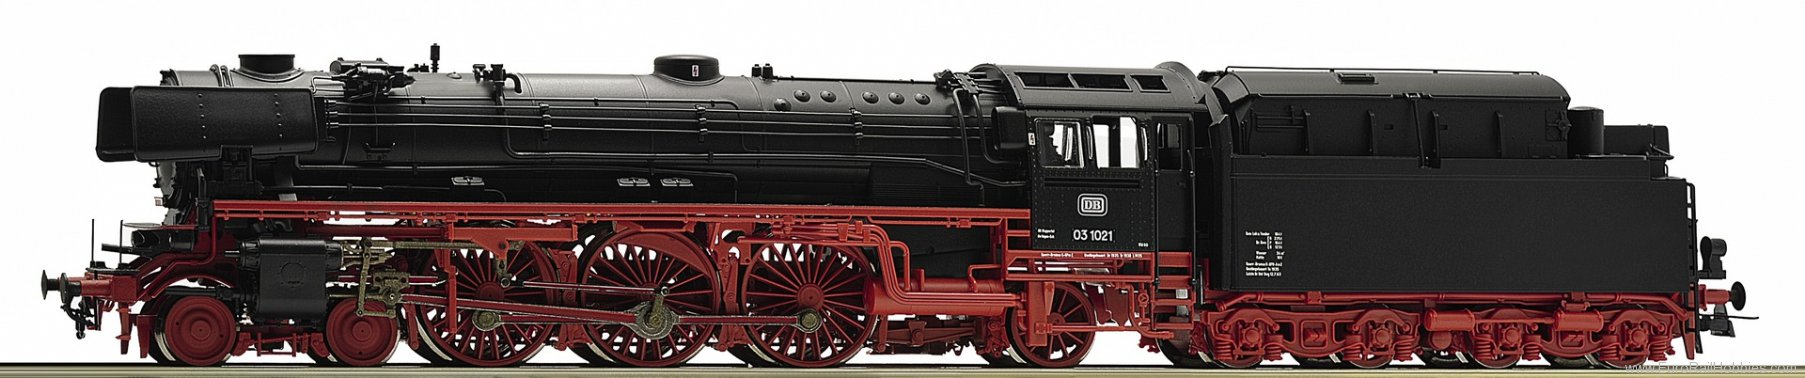 Roco 78208 Steam locomotive series 03.10. of the German